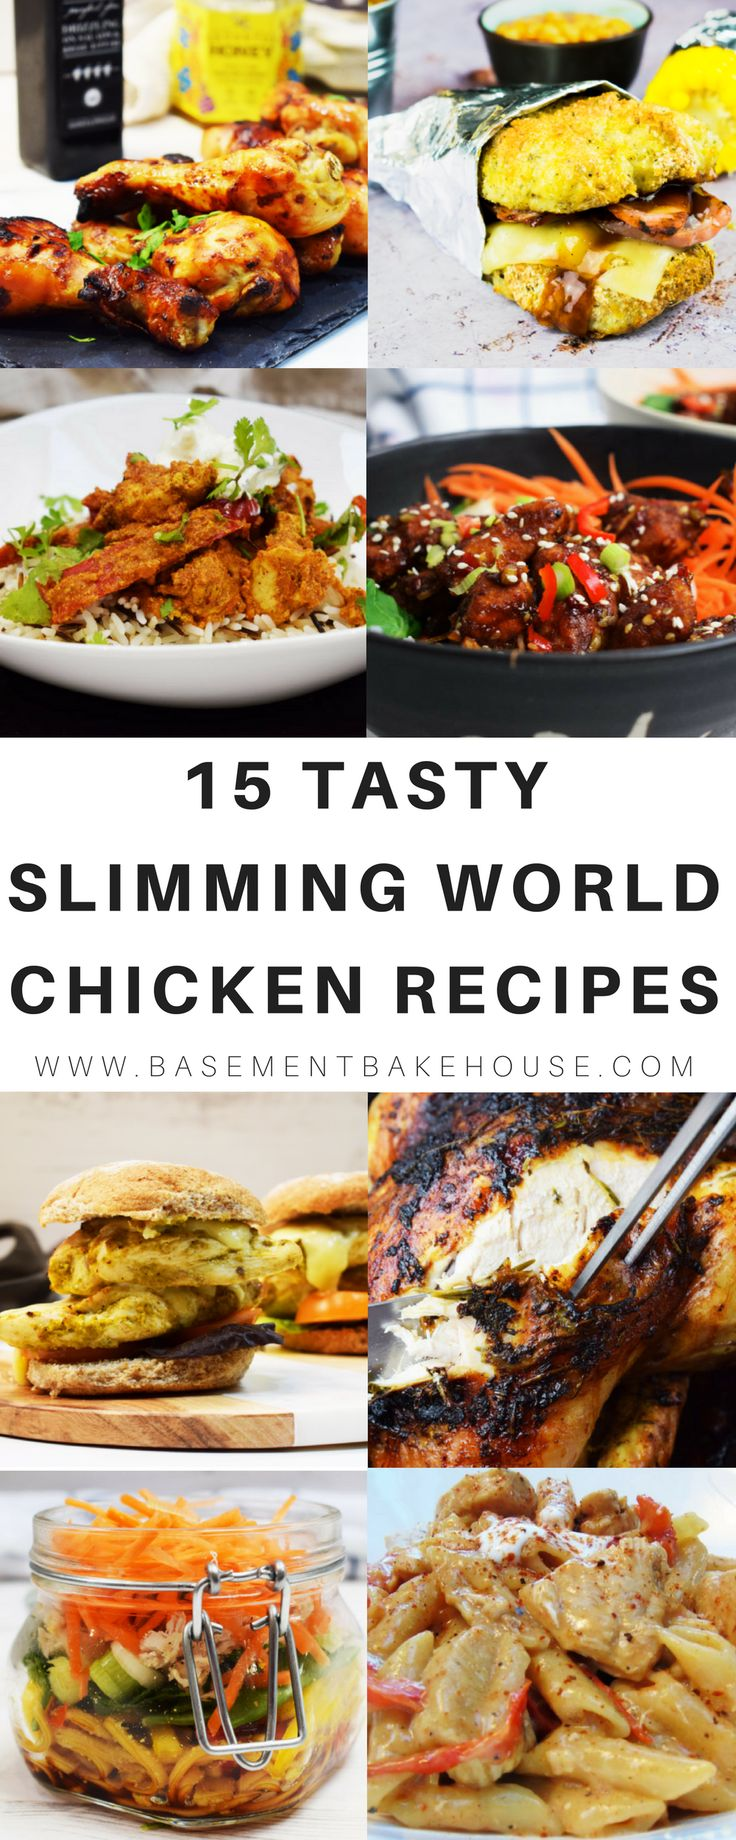 15 of the BEST Slimming World Chicken Recipes to try this week! Shake things up in the kitchen with some interesting healthy recipes and lots of inspiration for family friendly meals! From lunch time meal prep to comfort food dinners! - Basement Bakehouse #chickenfoodrecipes